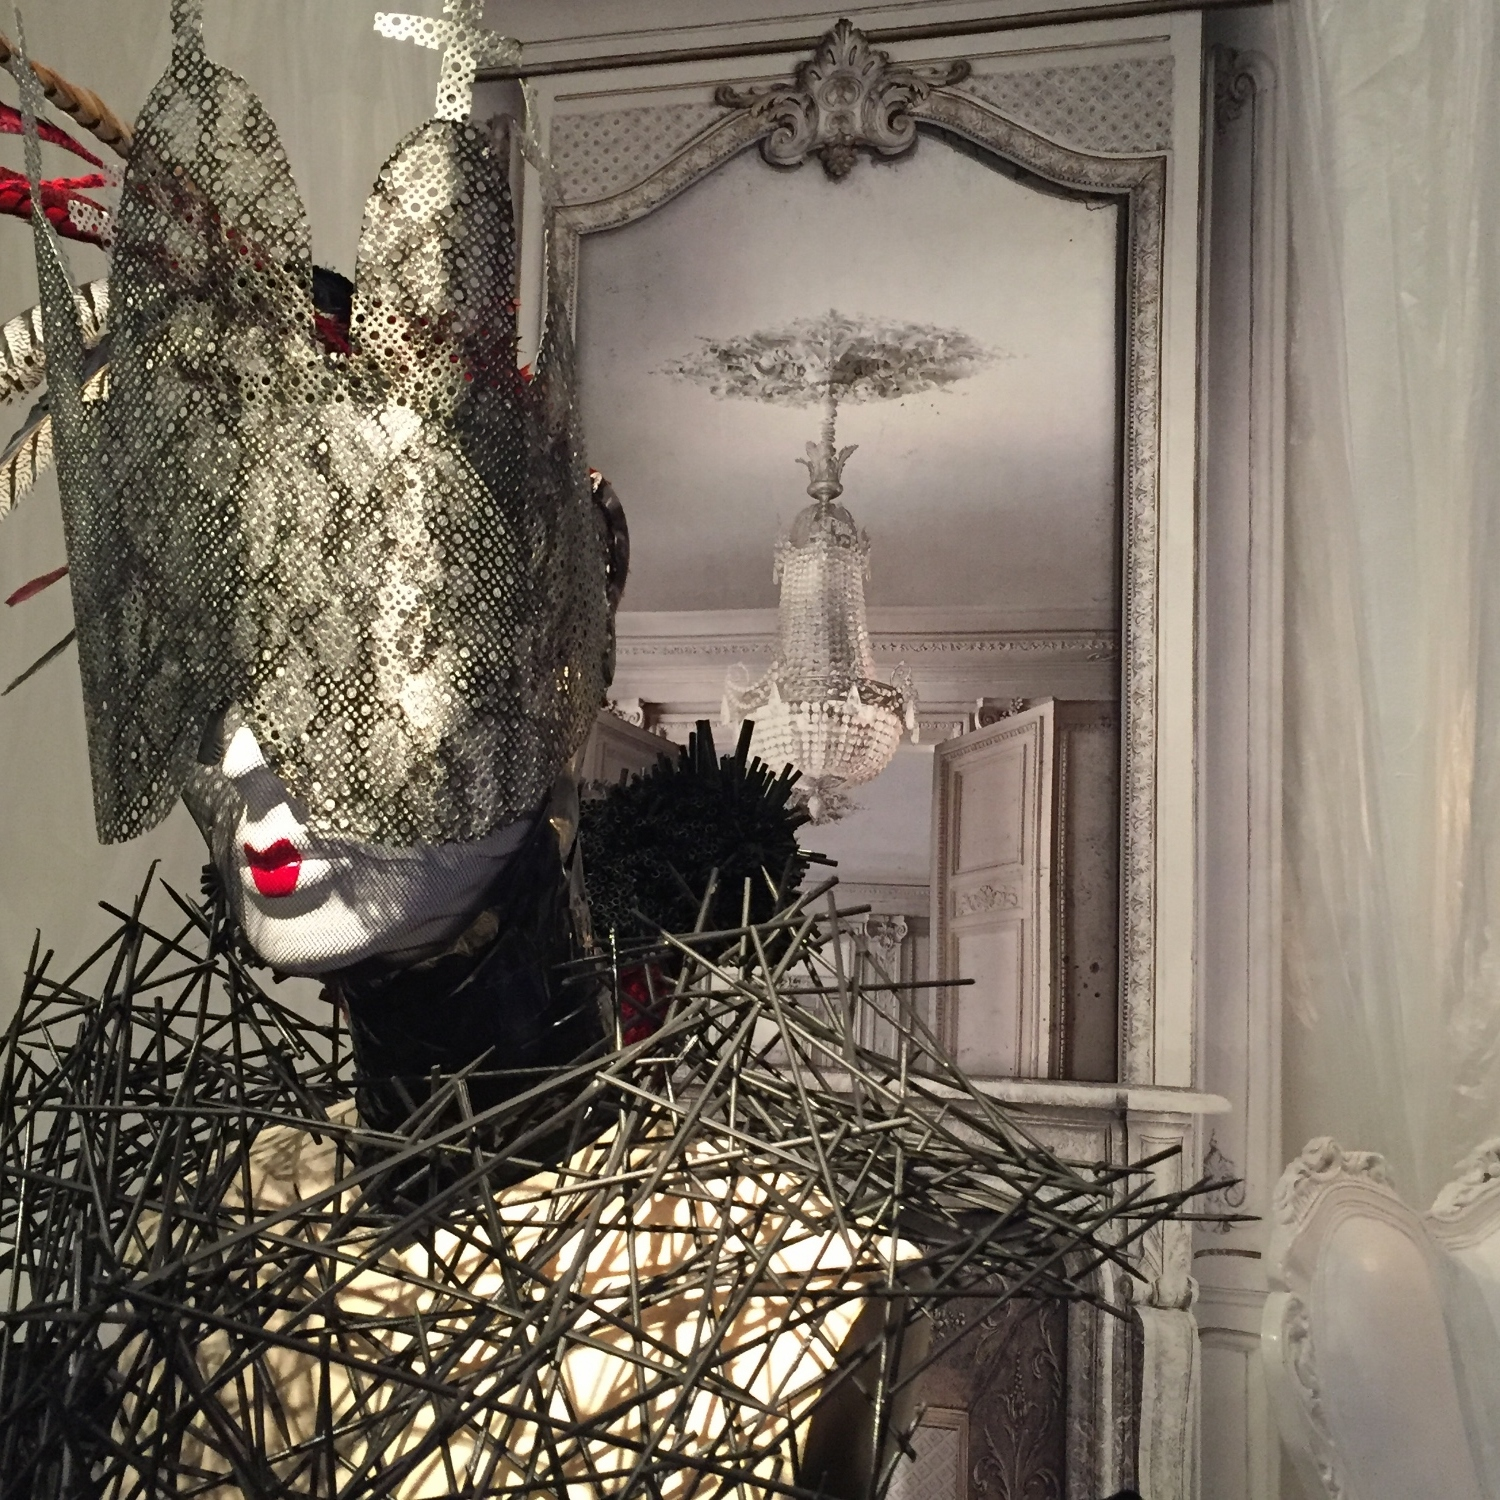 CONRAD BOOKER bamboo stick corset and lace painted metal perforated cathedral glasses. PHOTO: Doreen Creede